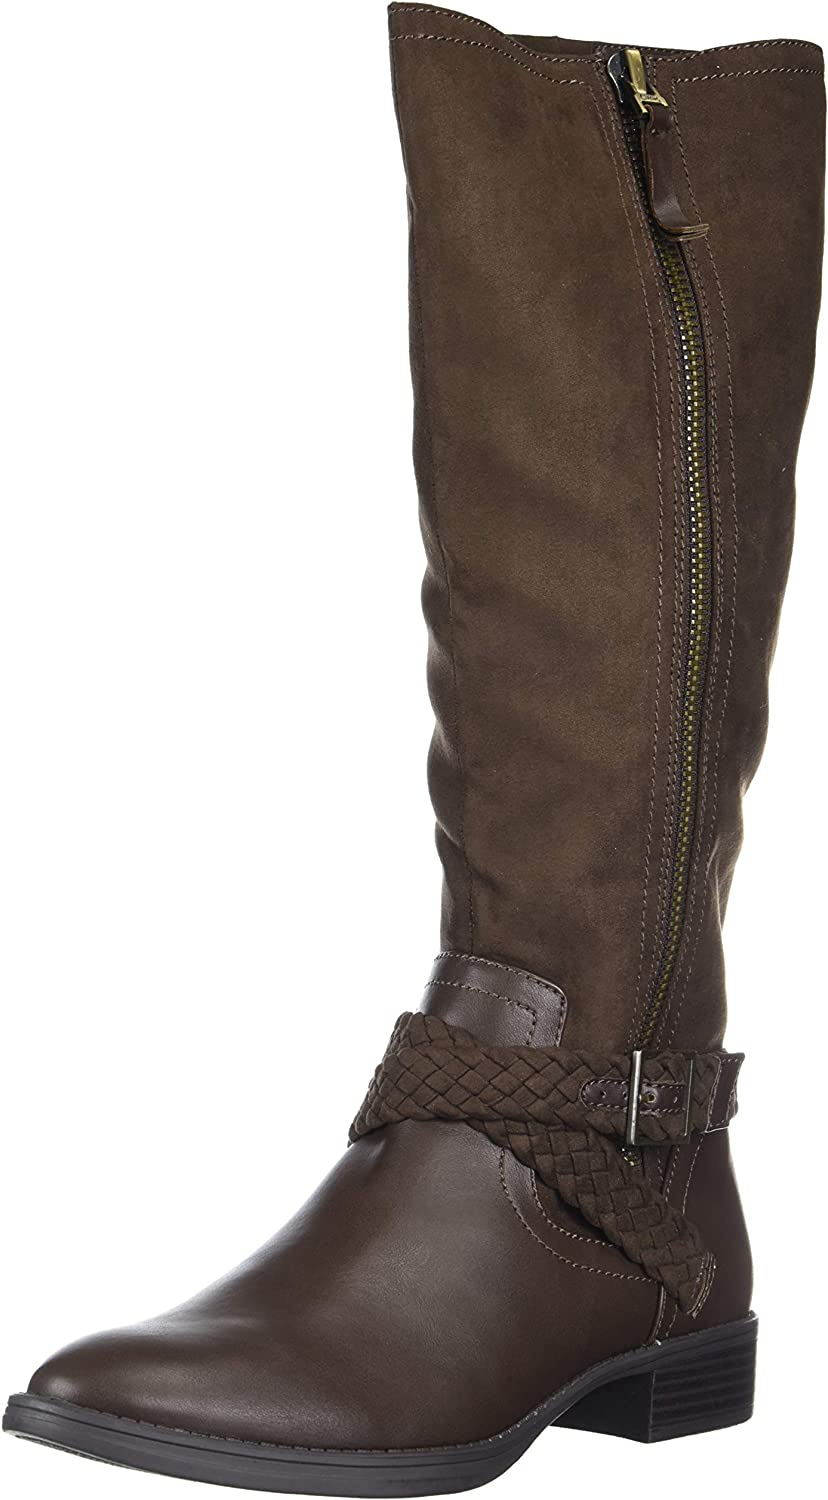 Circus by Sam Edelman Womens Perry Knee High Boot